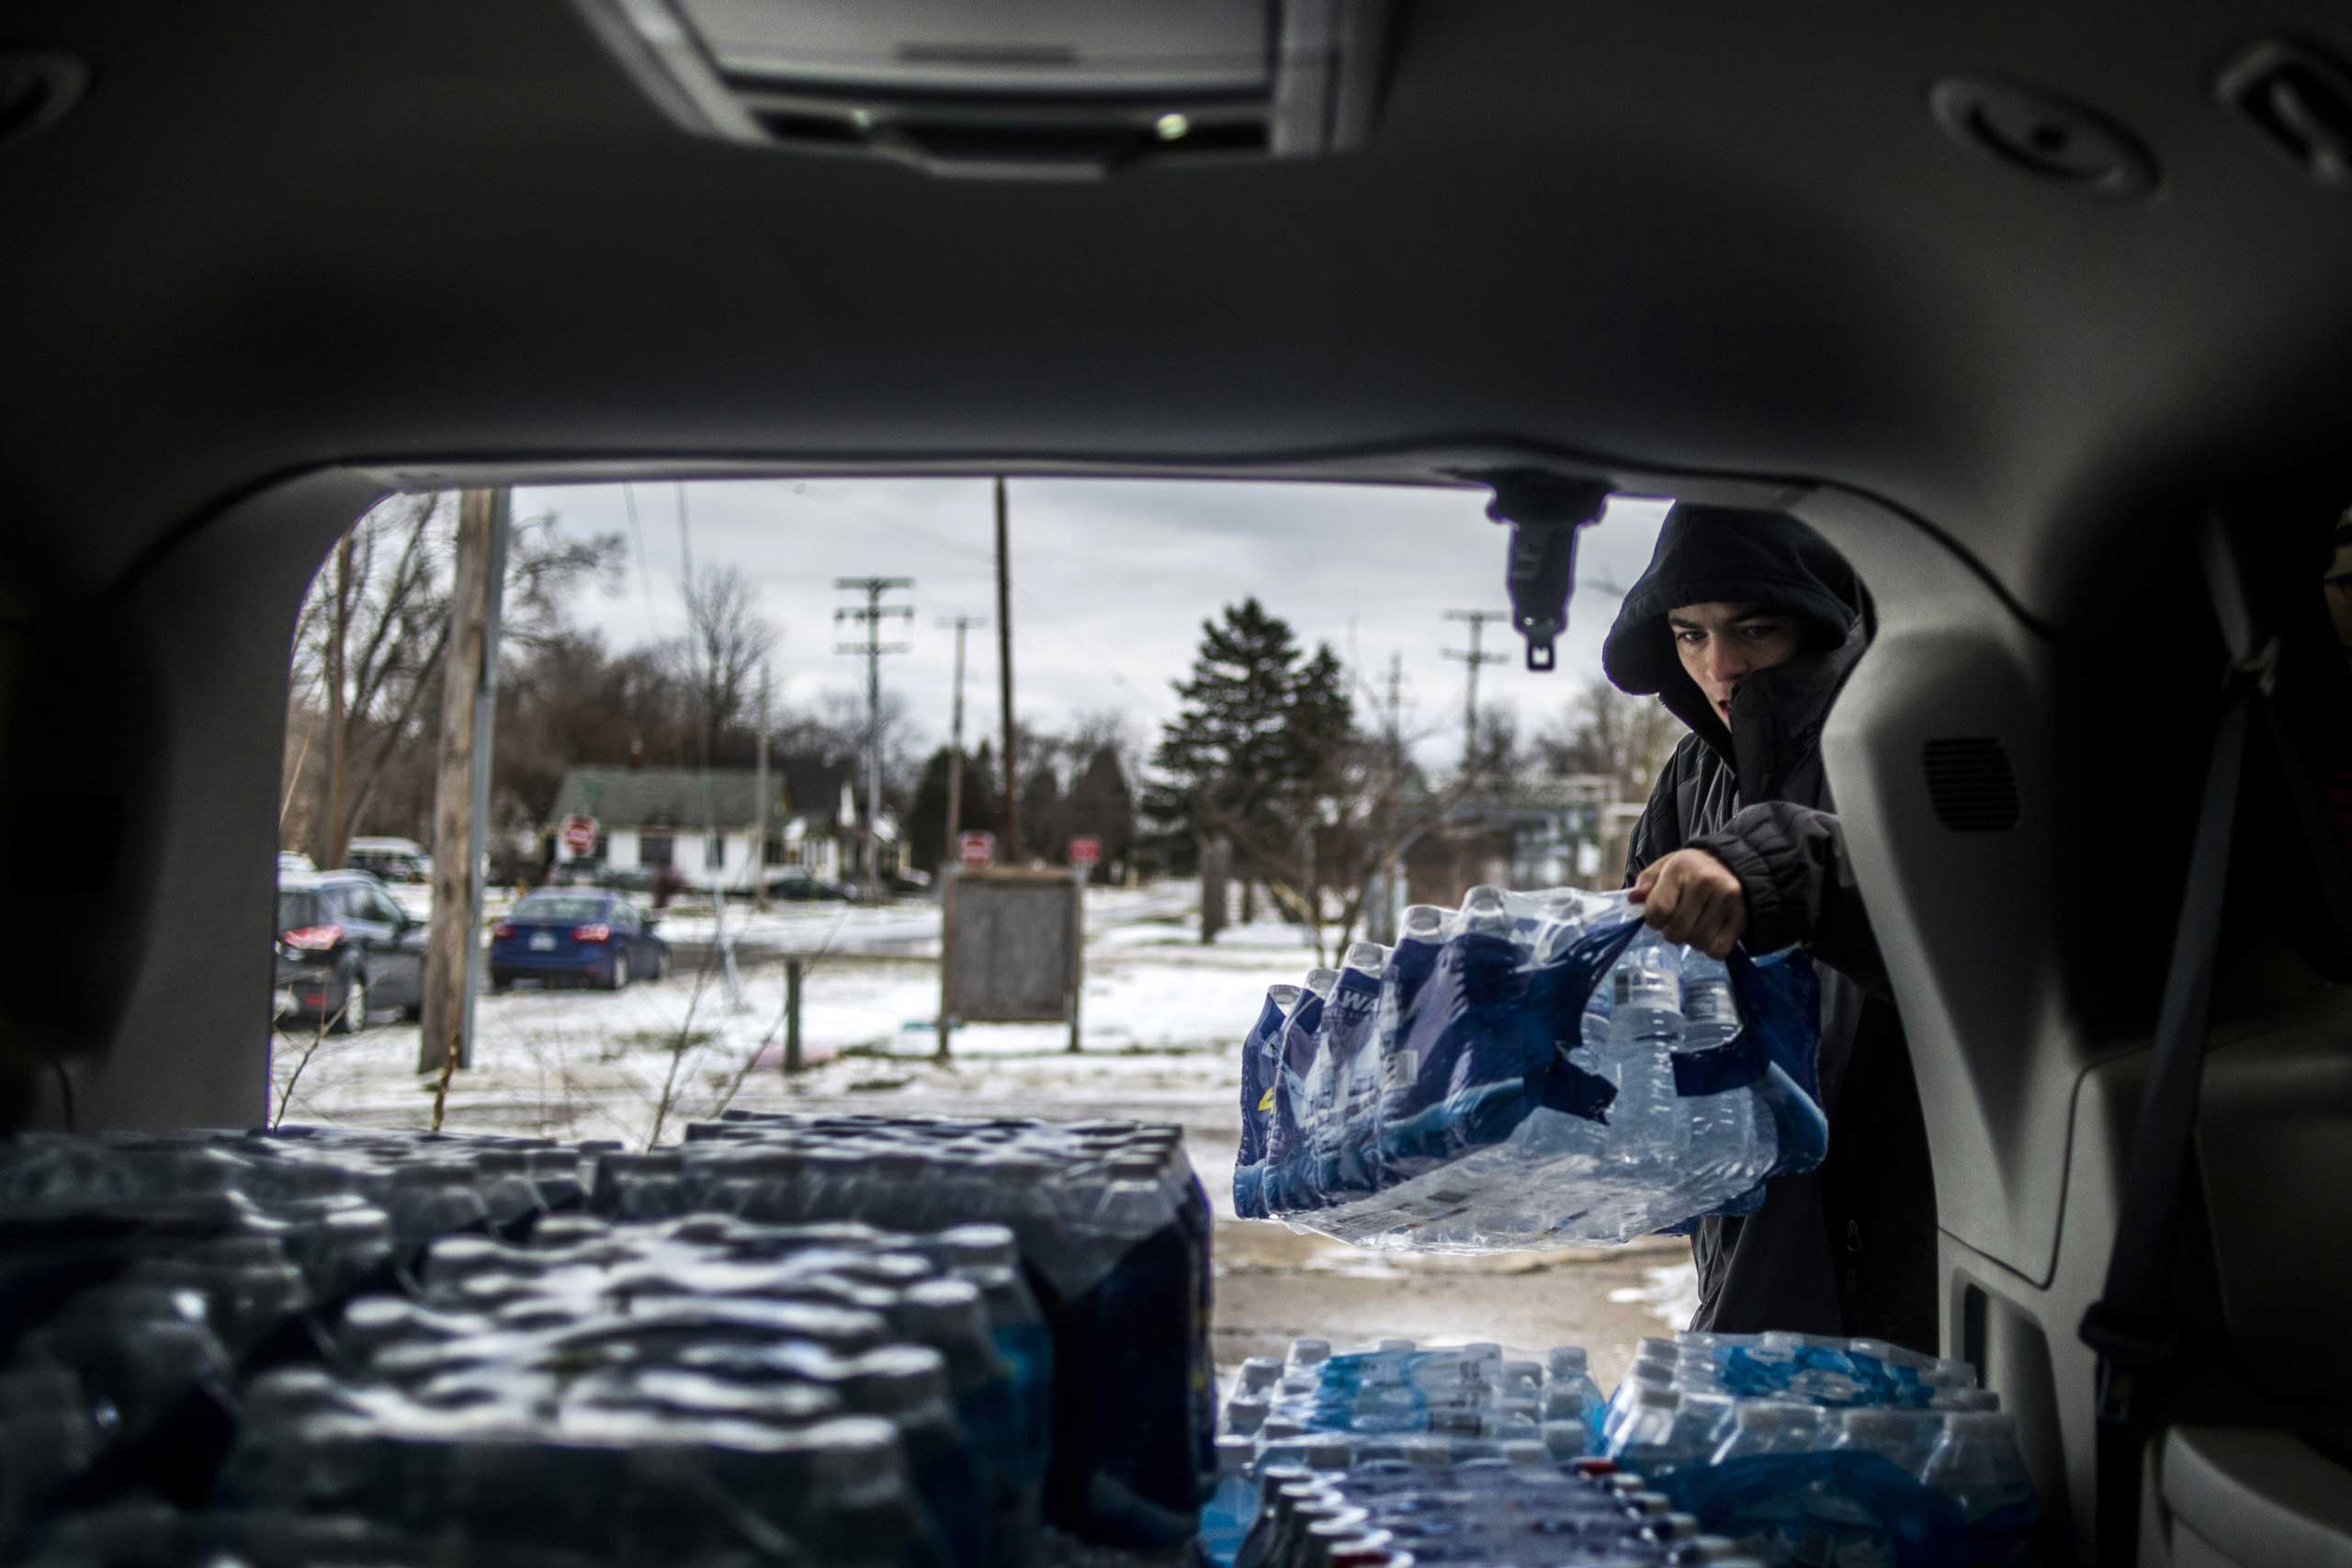 Flint resident Randy Huyck Jr., 17, throws a case of bottled water into the back of a volunteer's car as Detroit-area volunteers drop off more than 500 cases of bottled water in Flint, Mich. on Jan. 16, 2016.